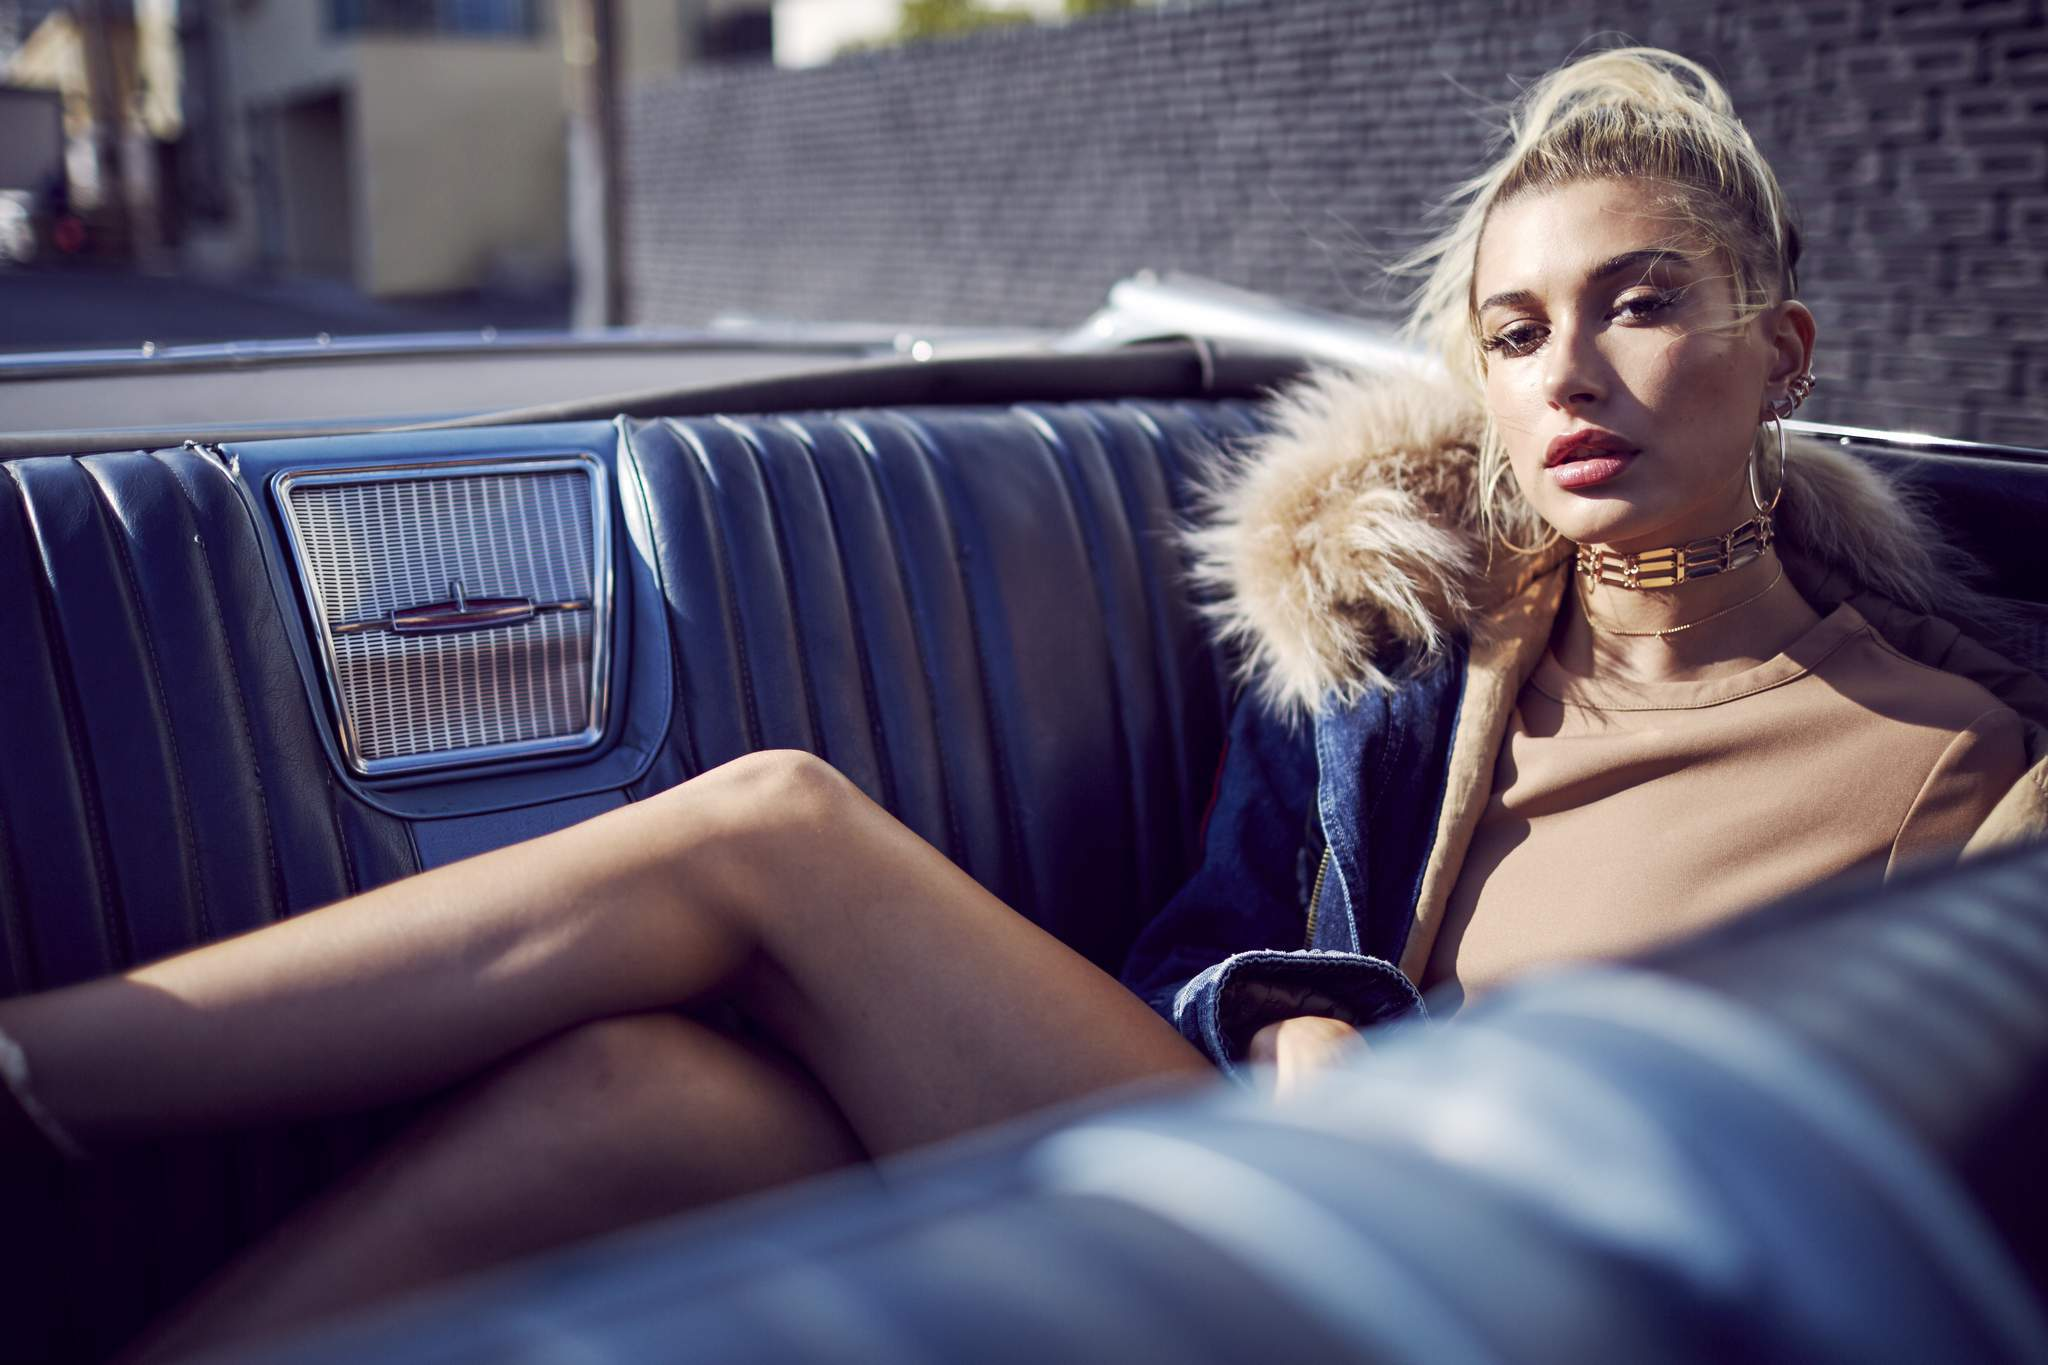 hailey baldwin model hd wallpaper 60083